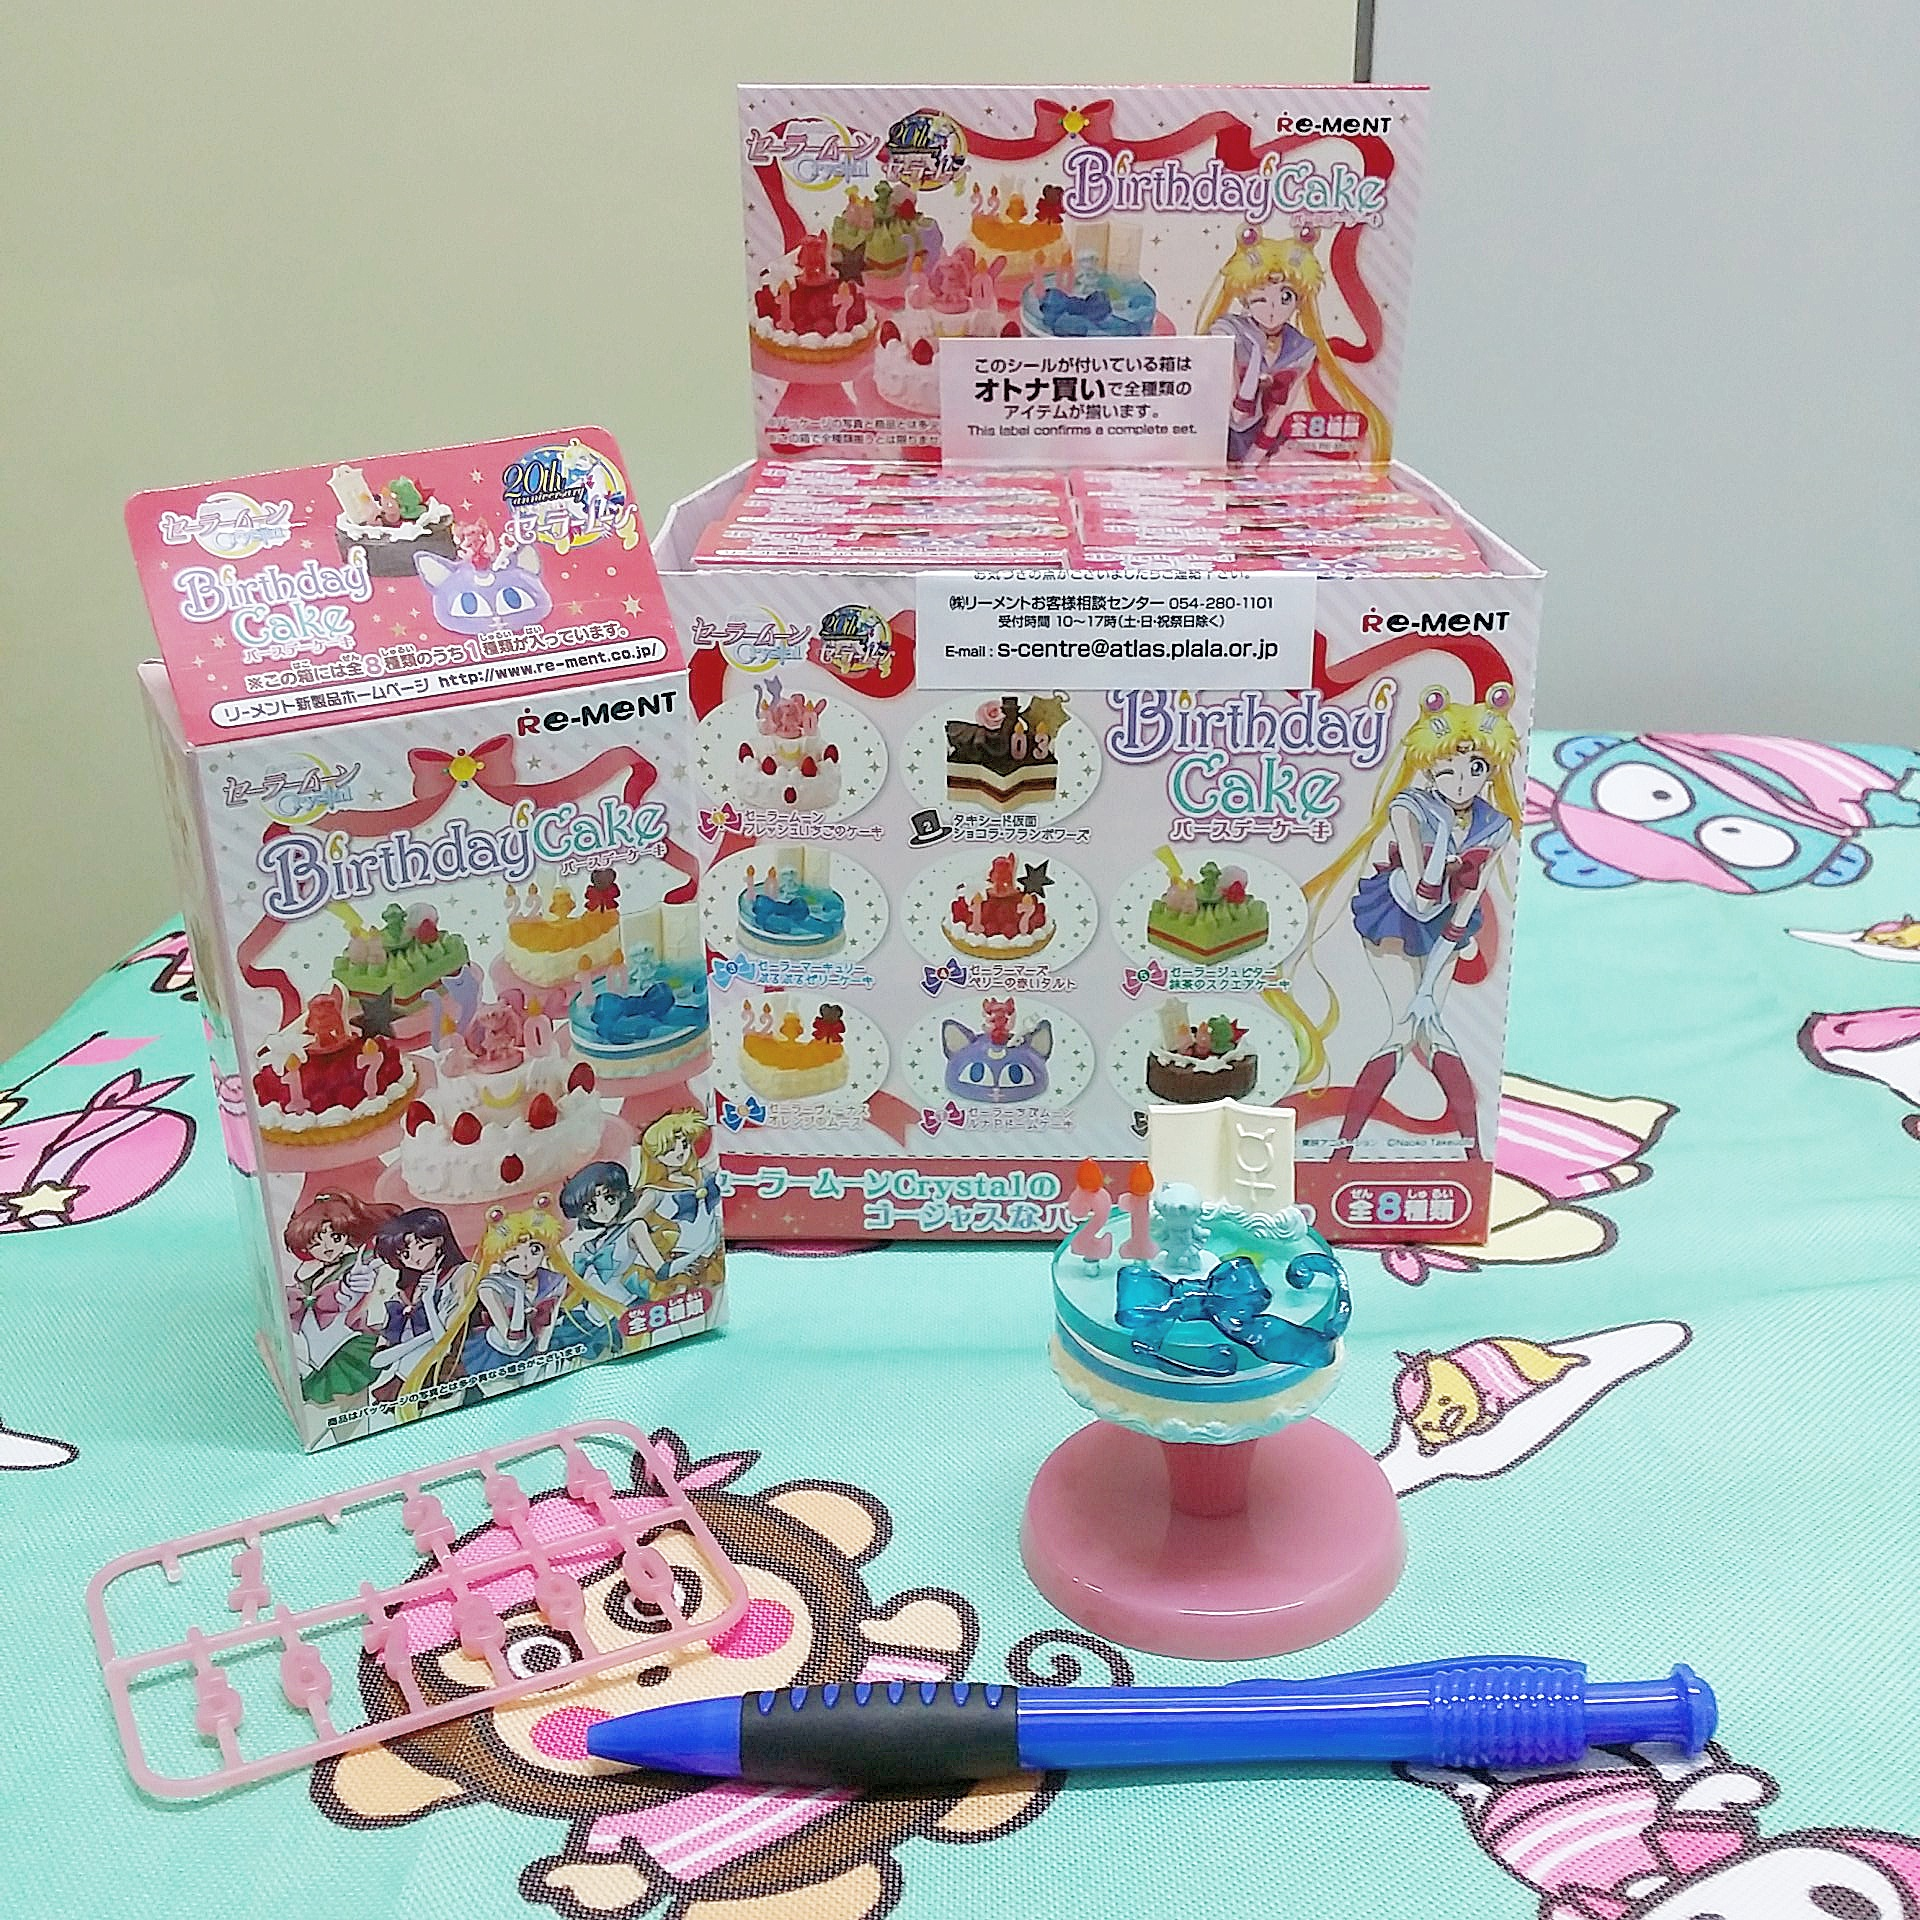 Rosys Garden Sailor Moon Birthday Cake Figure With Number Set